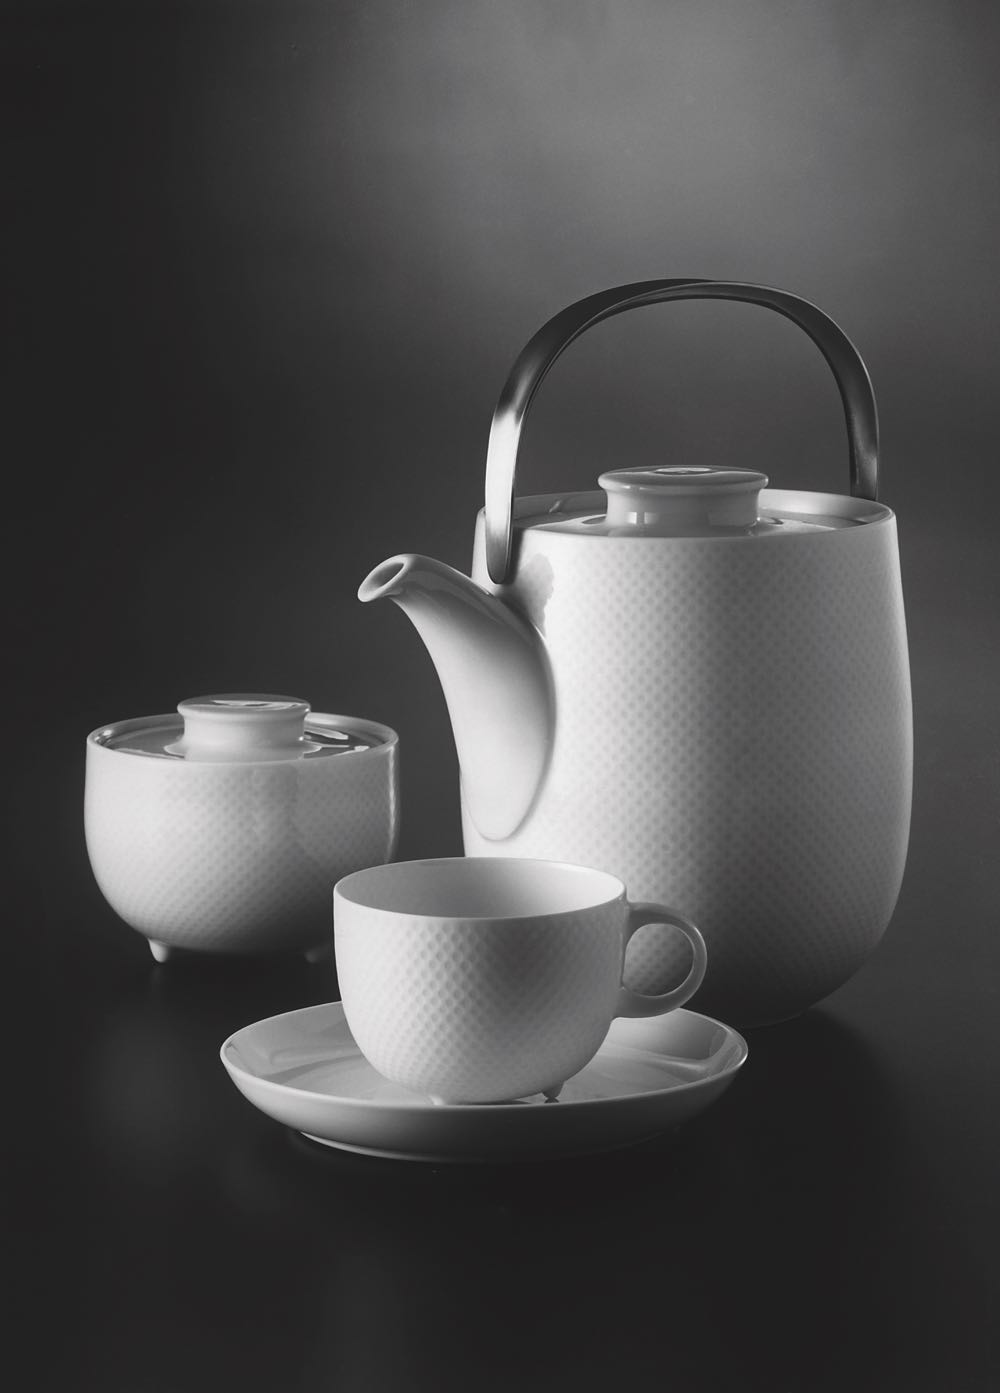 The 'Century' tea set released by Rosenthal. Photo courtesy of Rosenthal GmbH